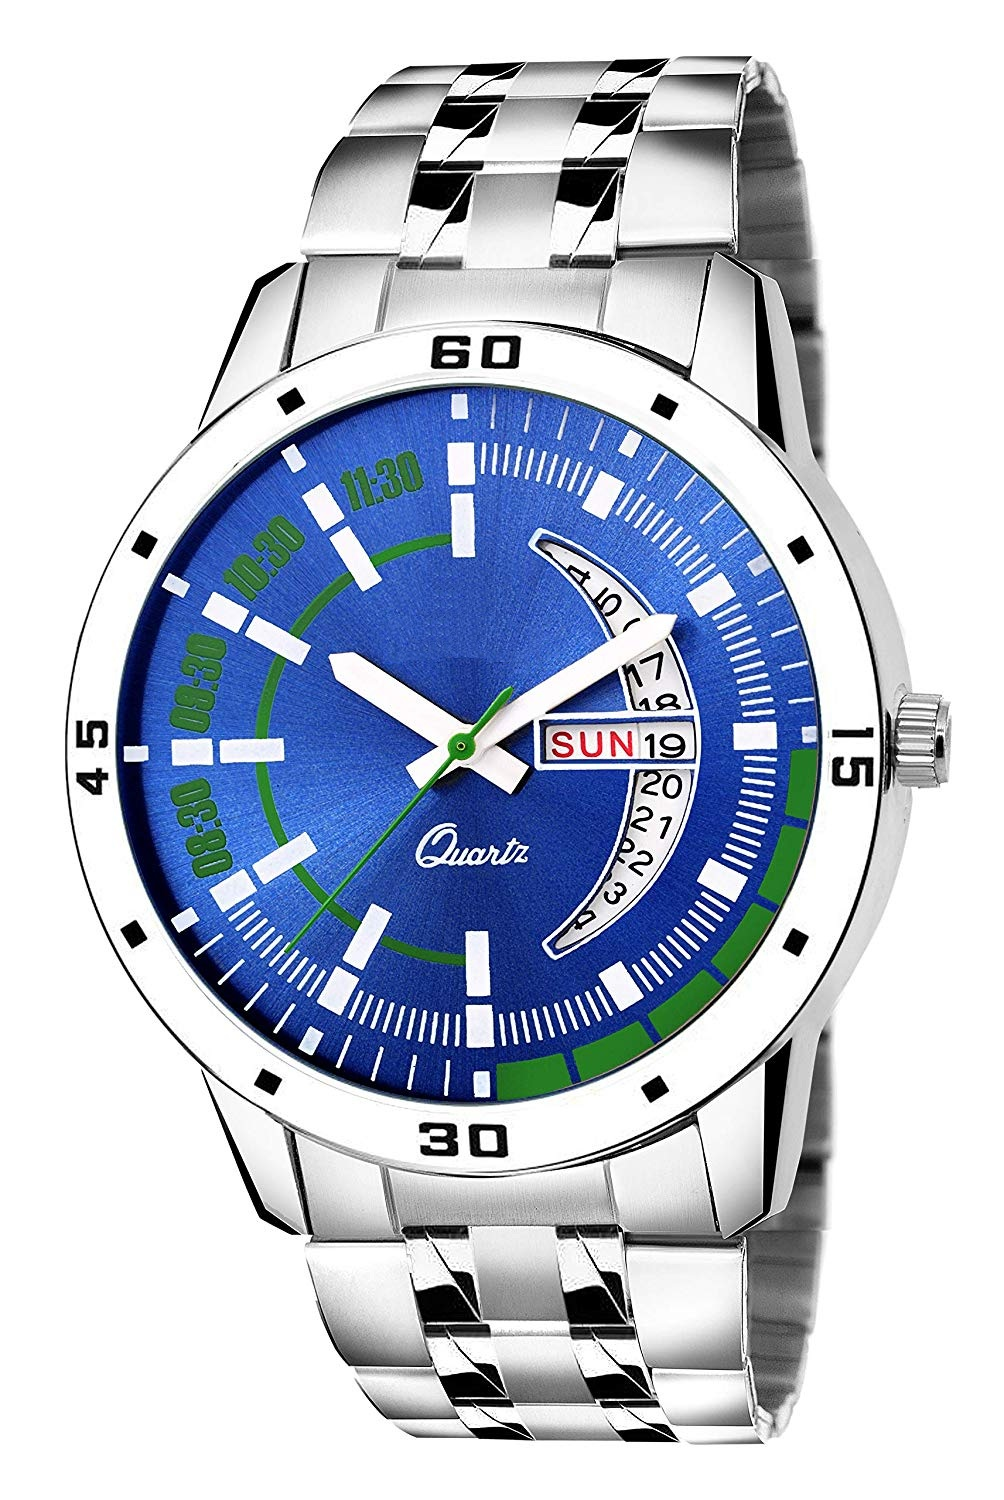 TRUE COLORS Day Date Functioning Blue Dial Metal Silver Chain Watch for Boys and Men